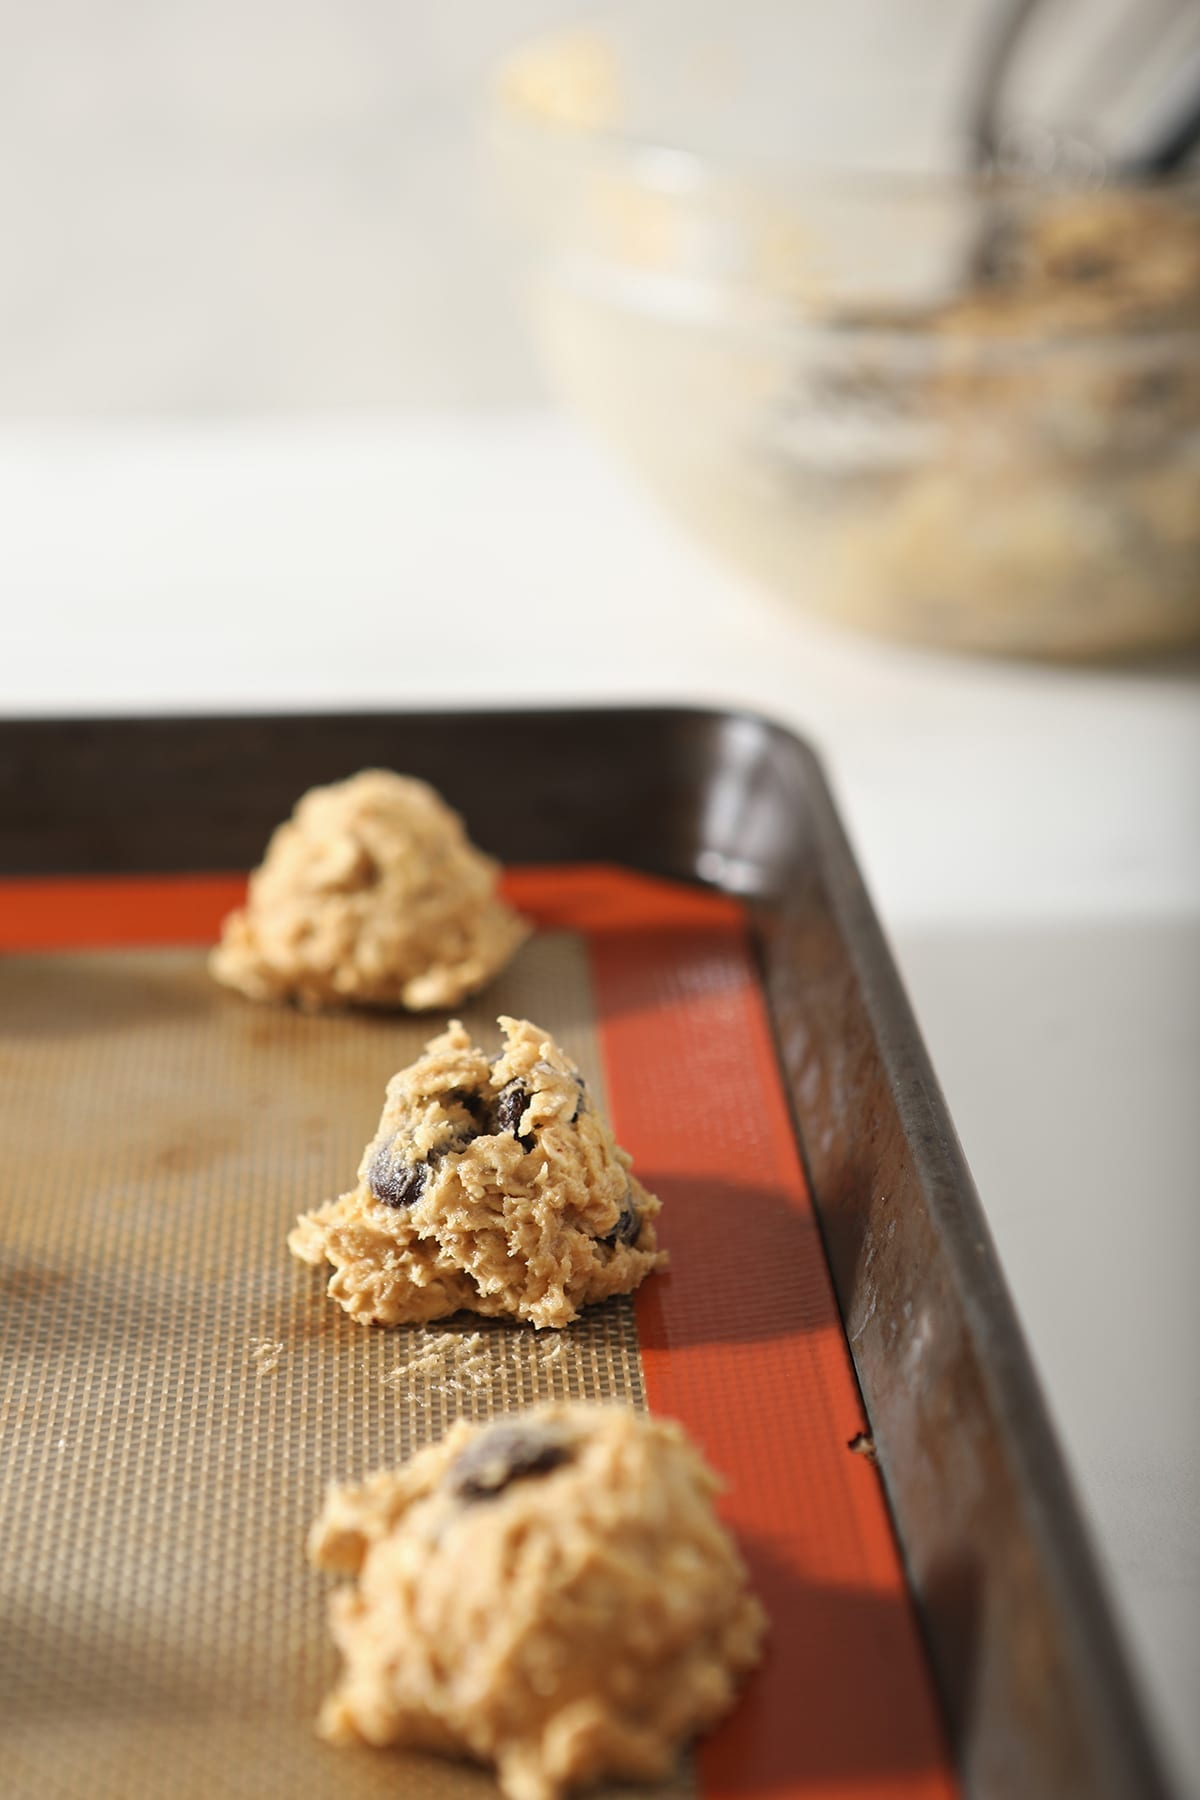 One tablespoon cookies on a lined baking sheet before baking